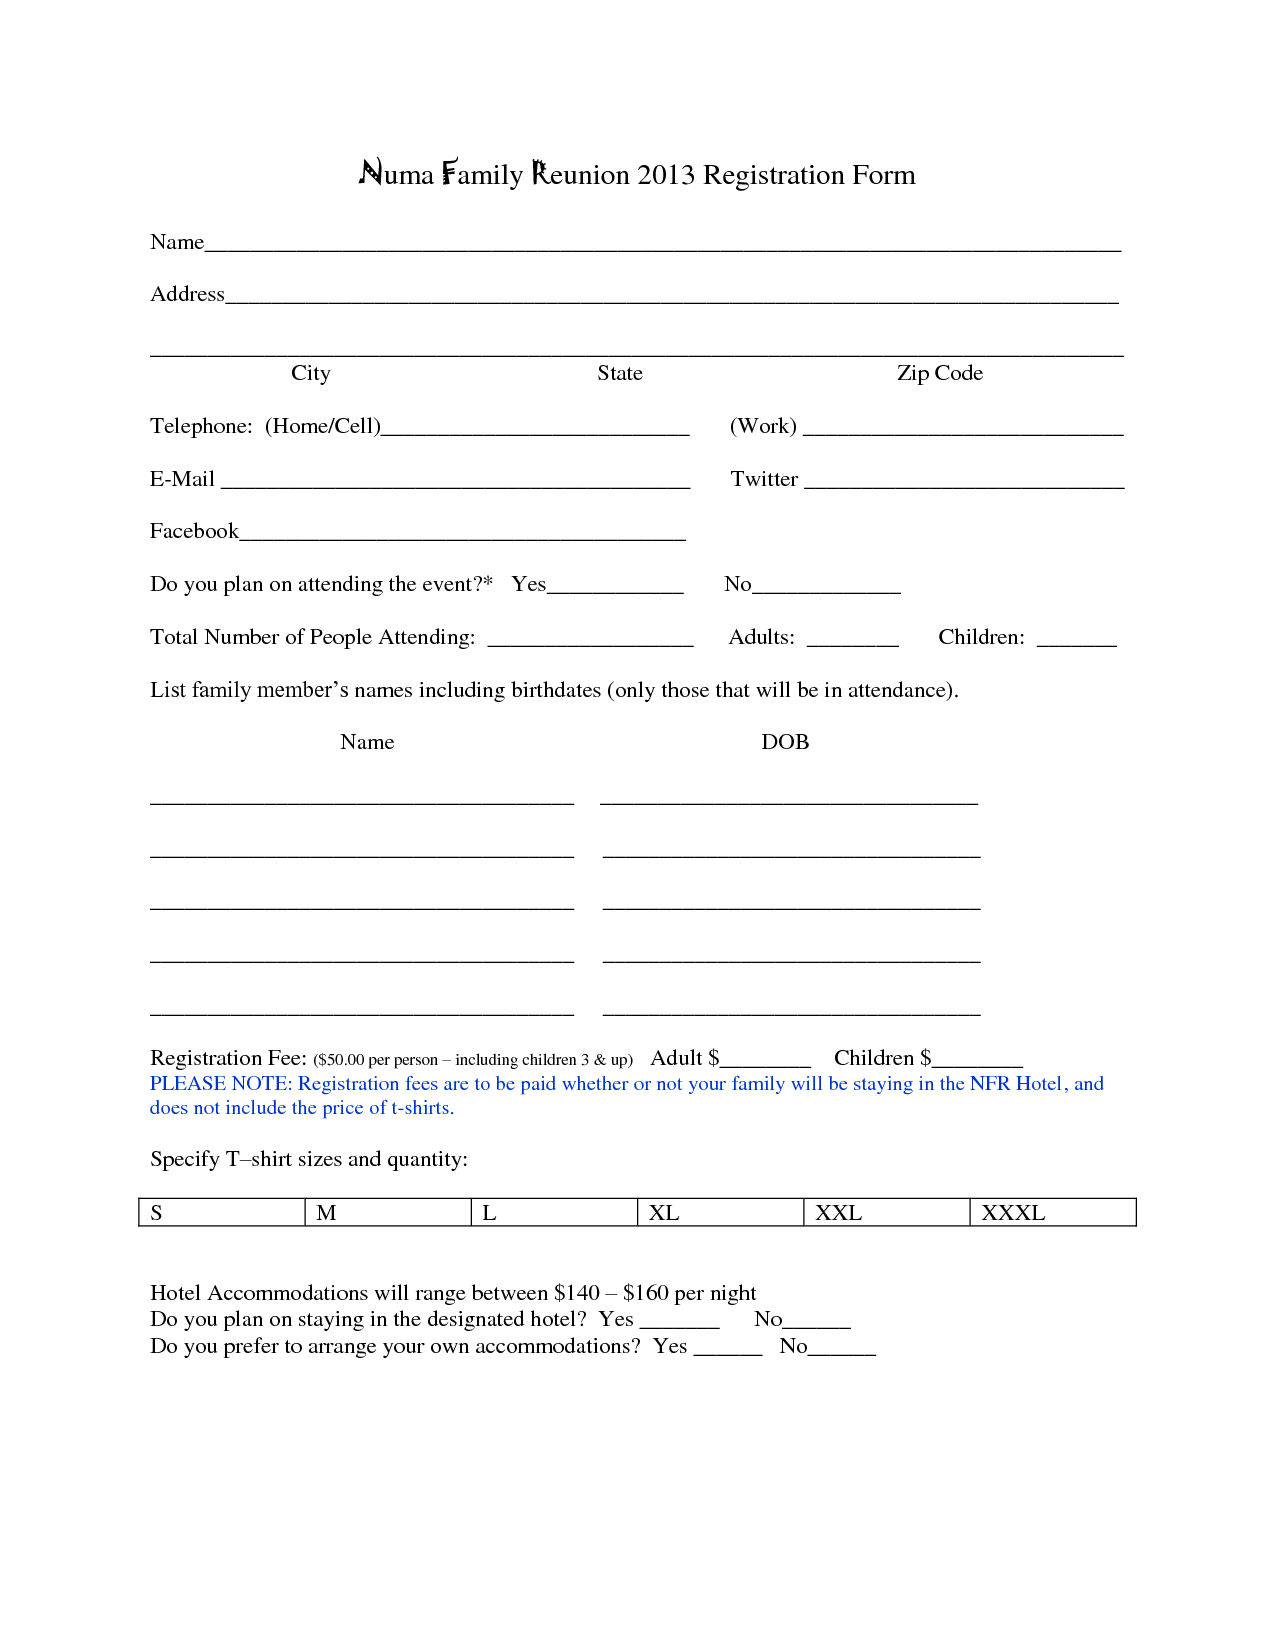 Family reunion registration form template family reunions family reunion registration form template thecheapjerseys Gallery